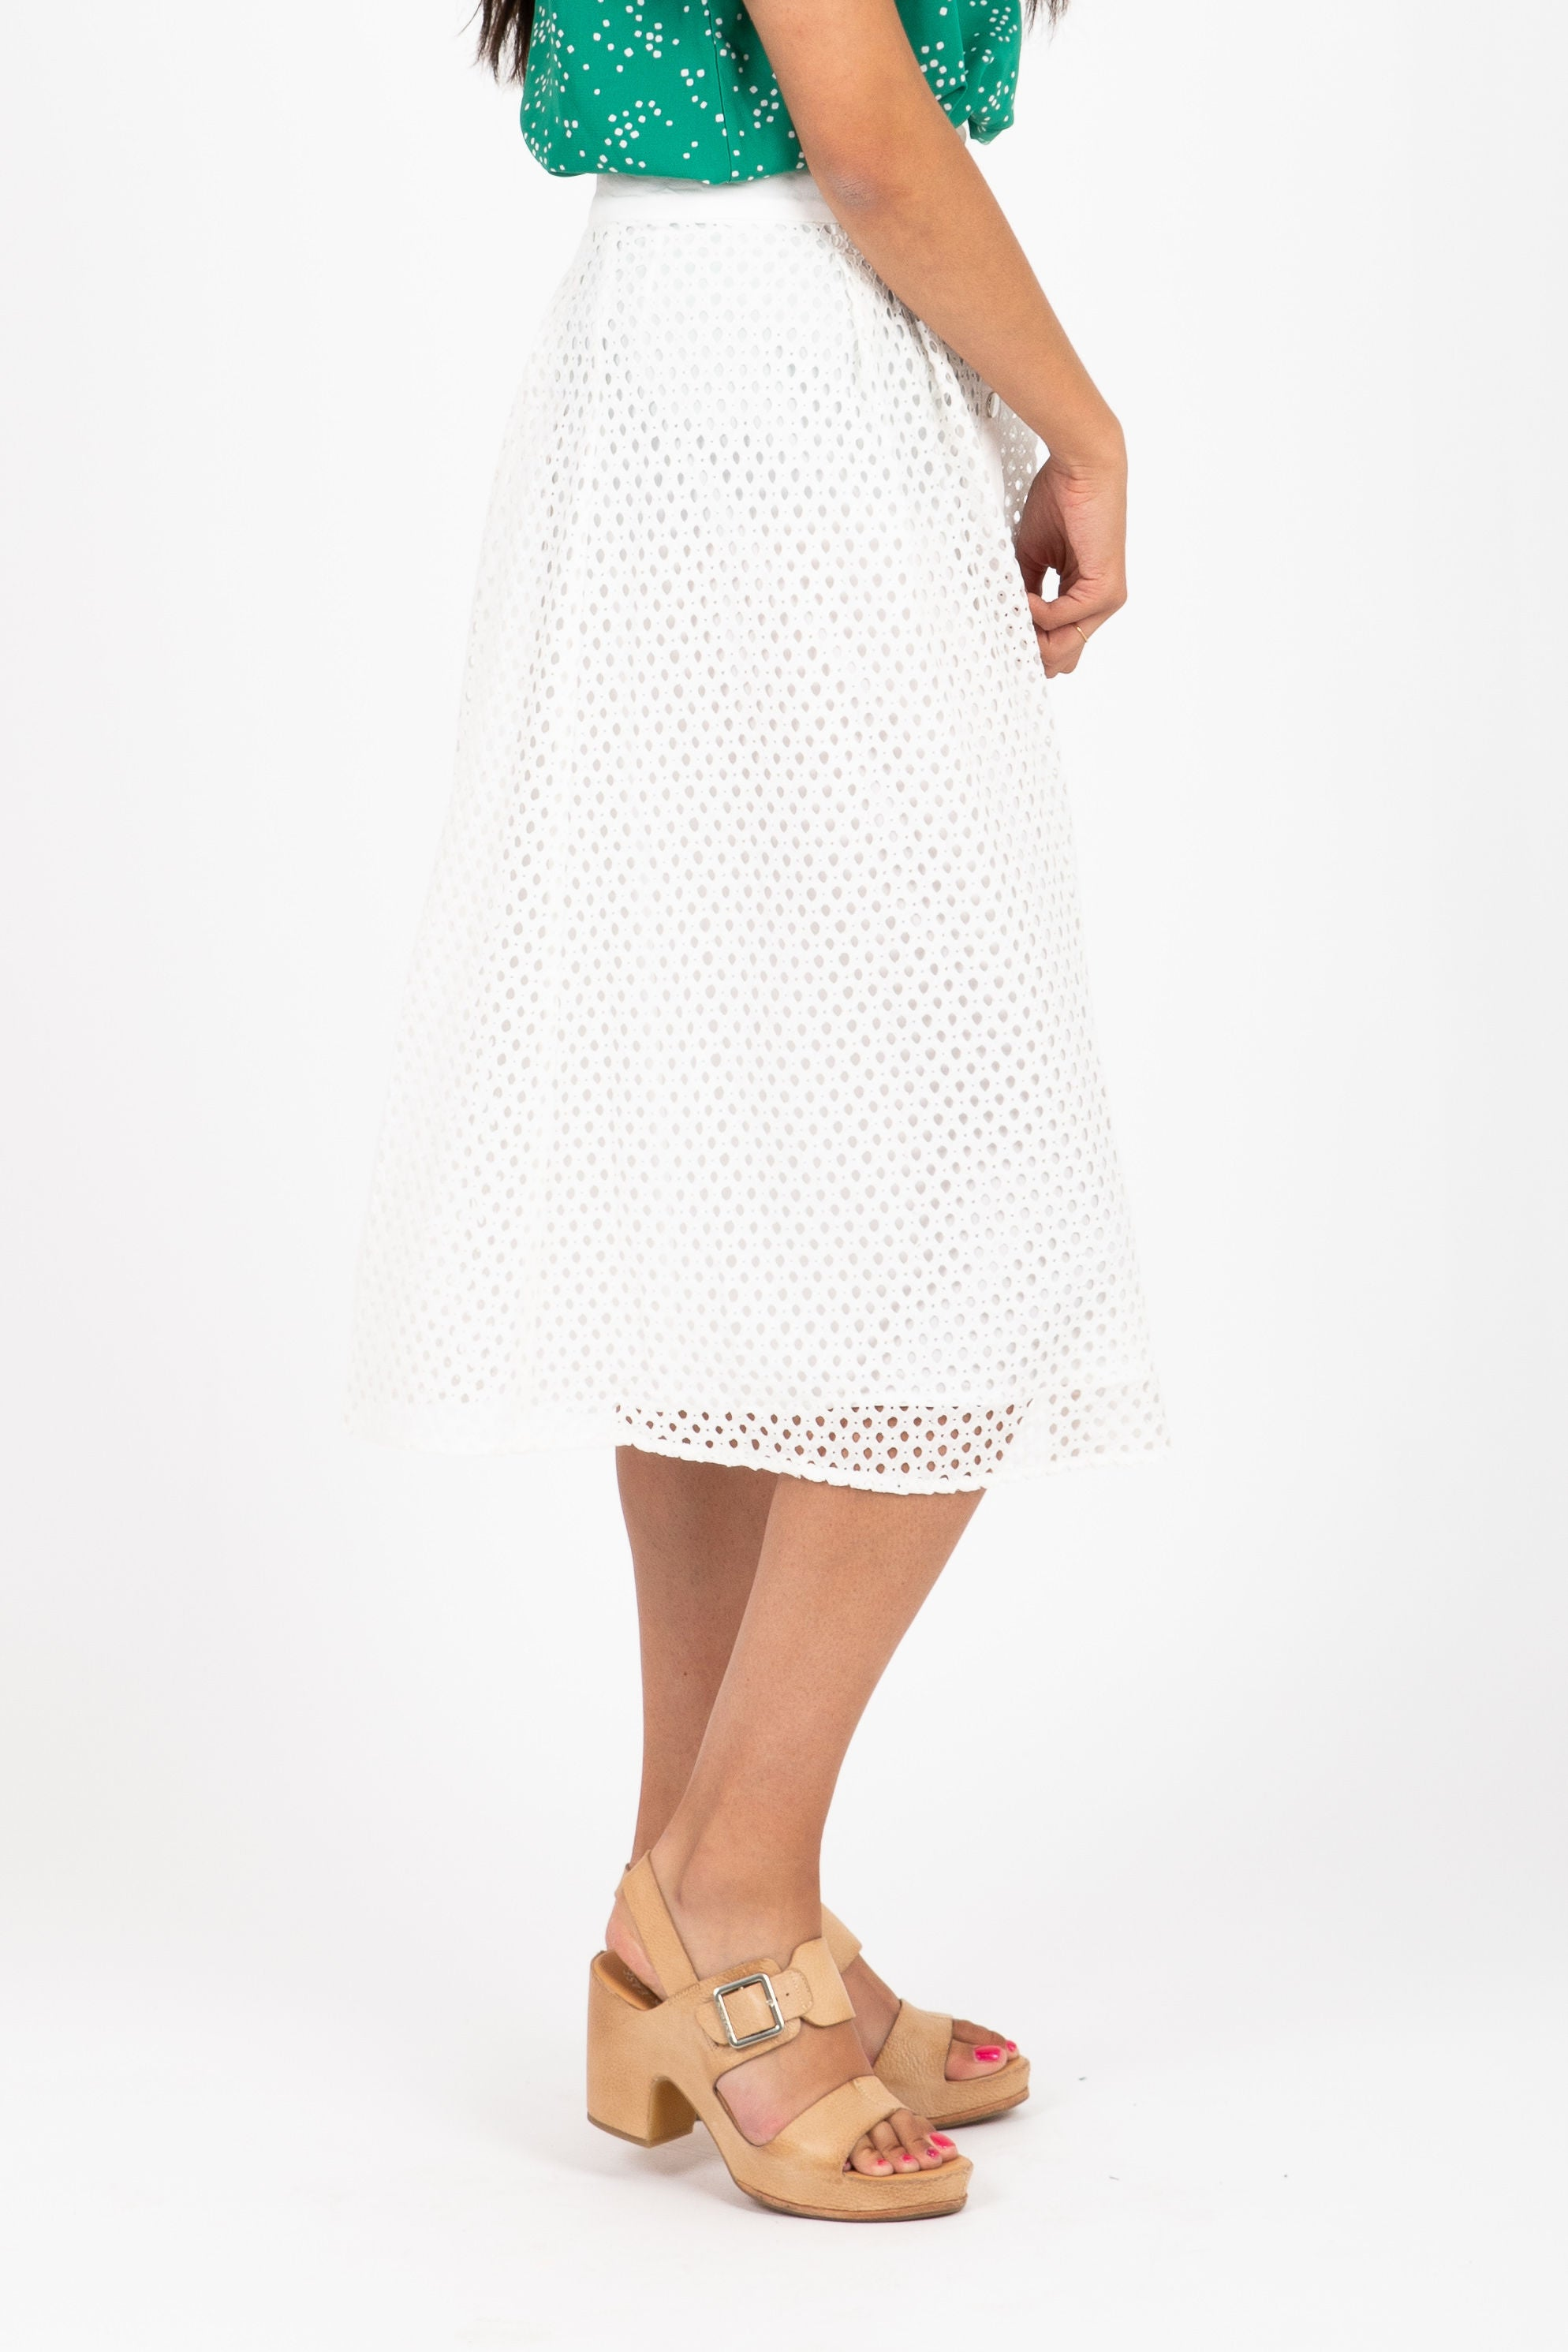 The Goals Perforated Midi Skirt in White